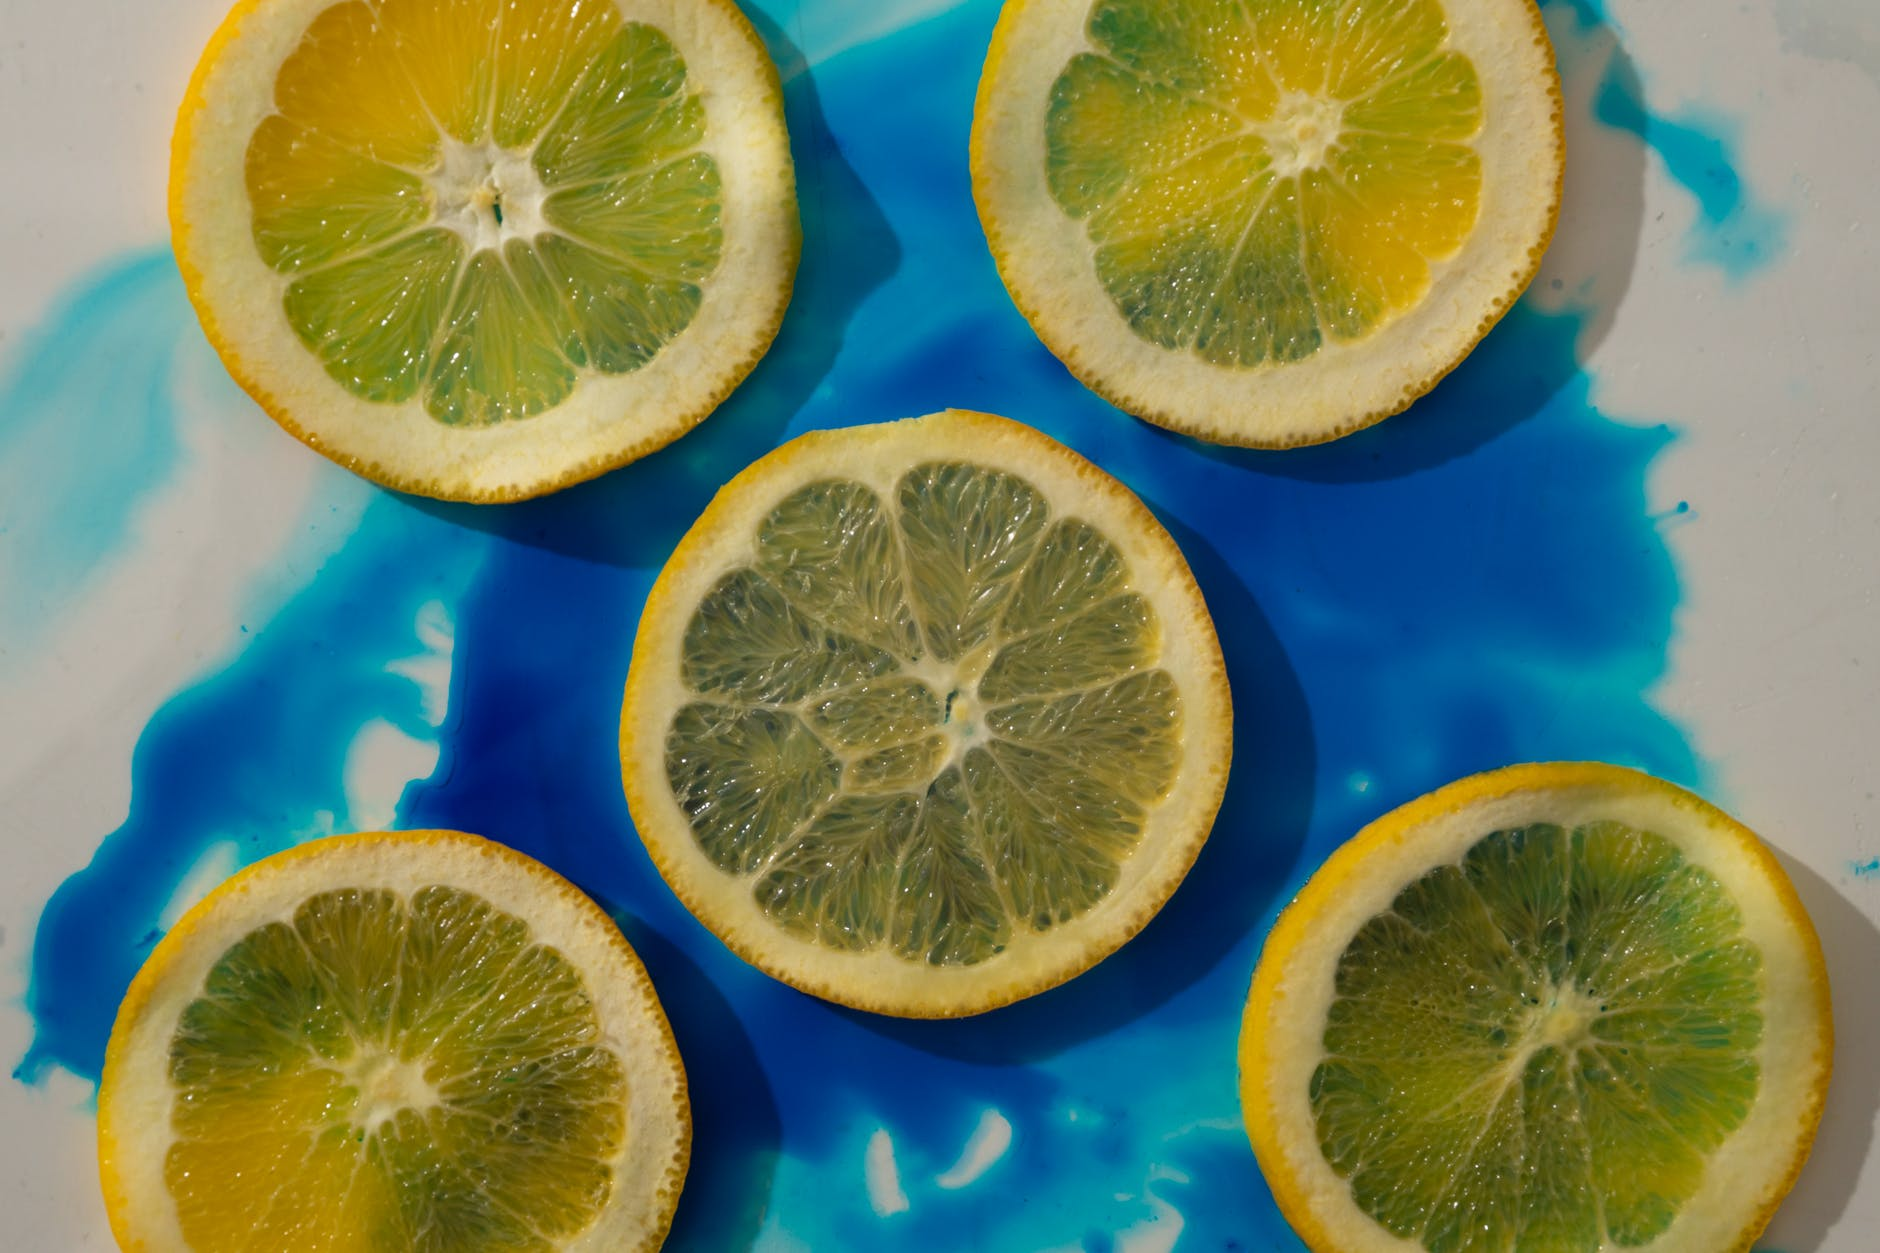 lemon slices on blue and white surface